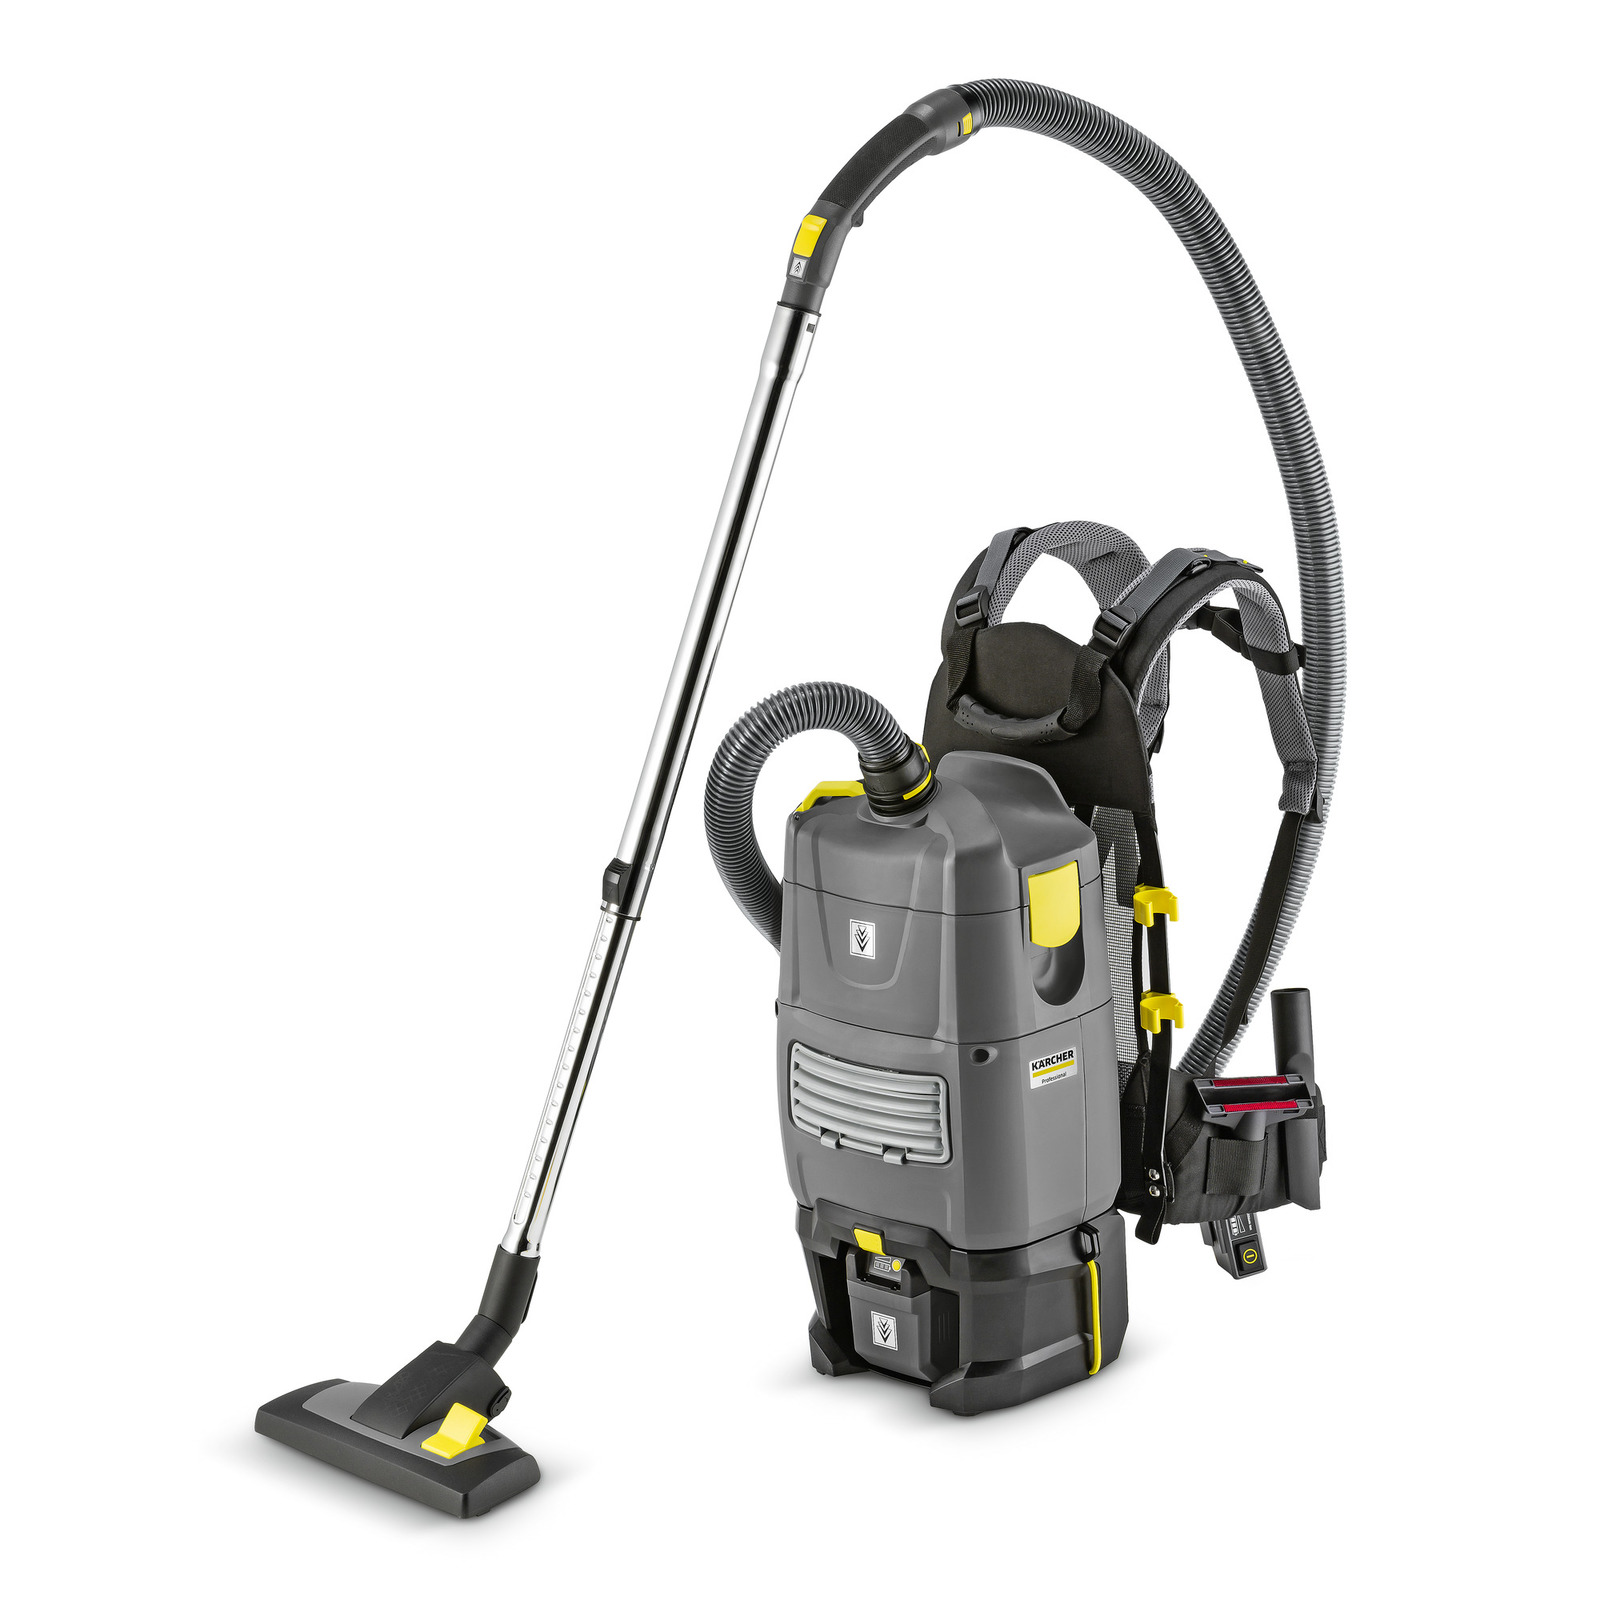 Bv 5 1 Bp Krcher International Wiring Harness Battery Powered Backpack Vacuum Designed With Ergonomic Highly Comfortable Carrying Frame For Cleaning Work In The Most Confined Spaces